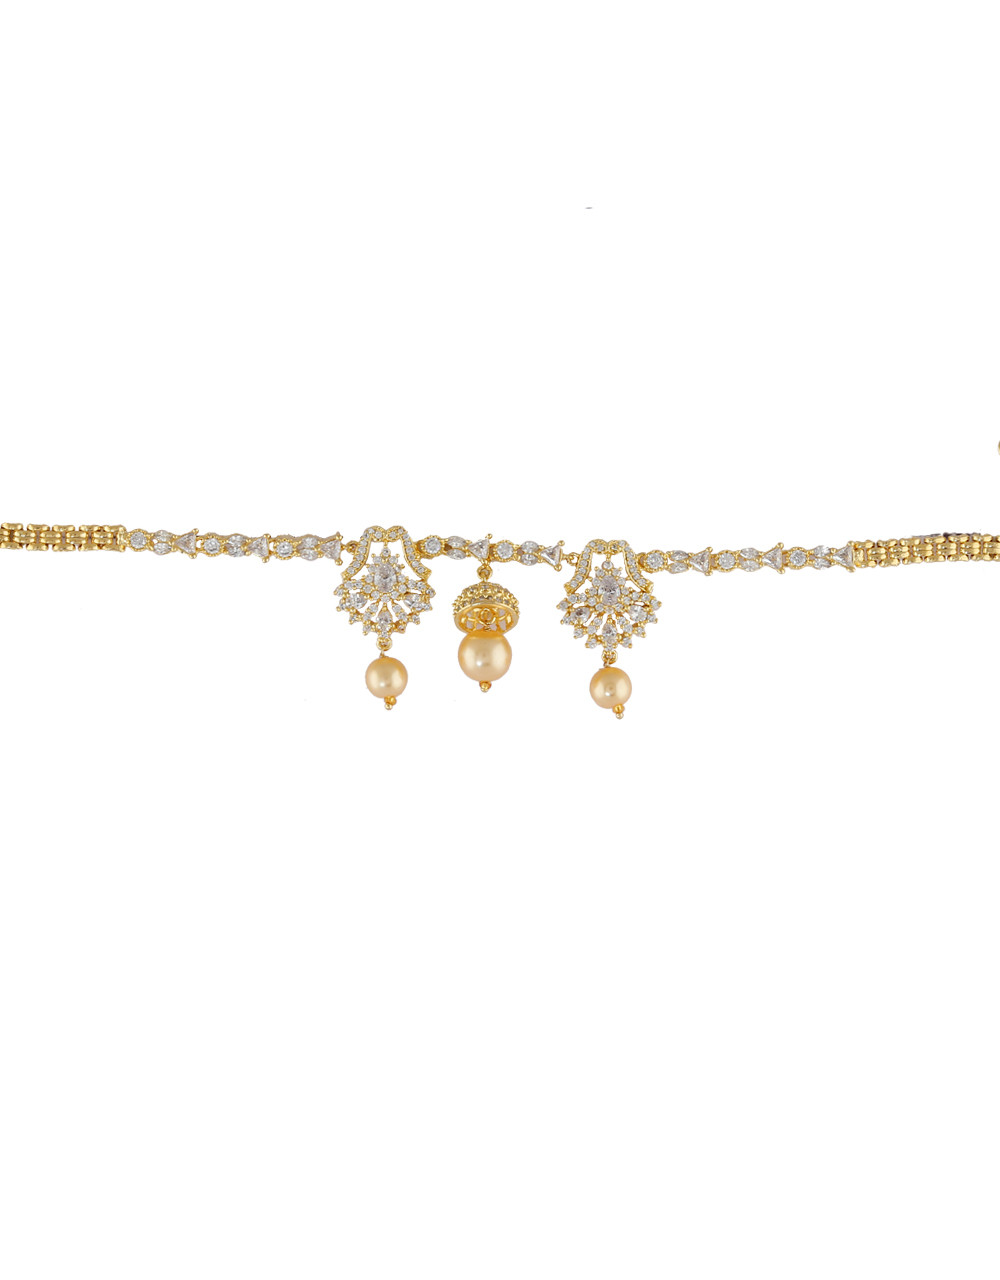 Gold Finish Armlet Styled With Pearls Beads Bajuband